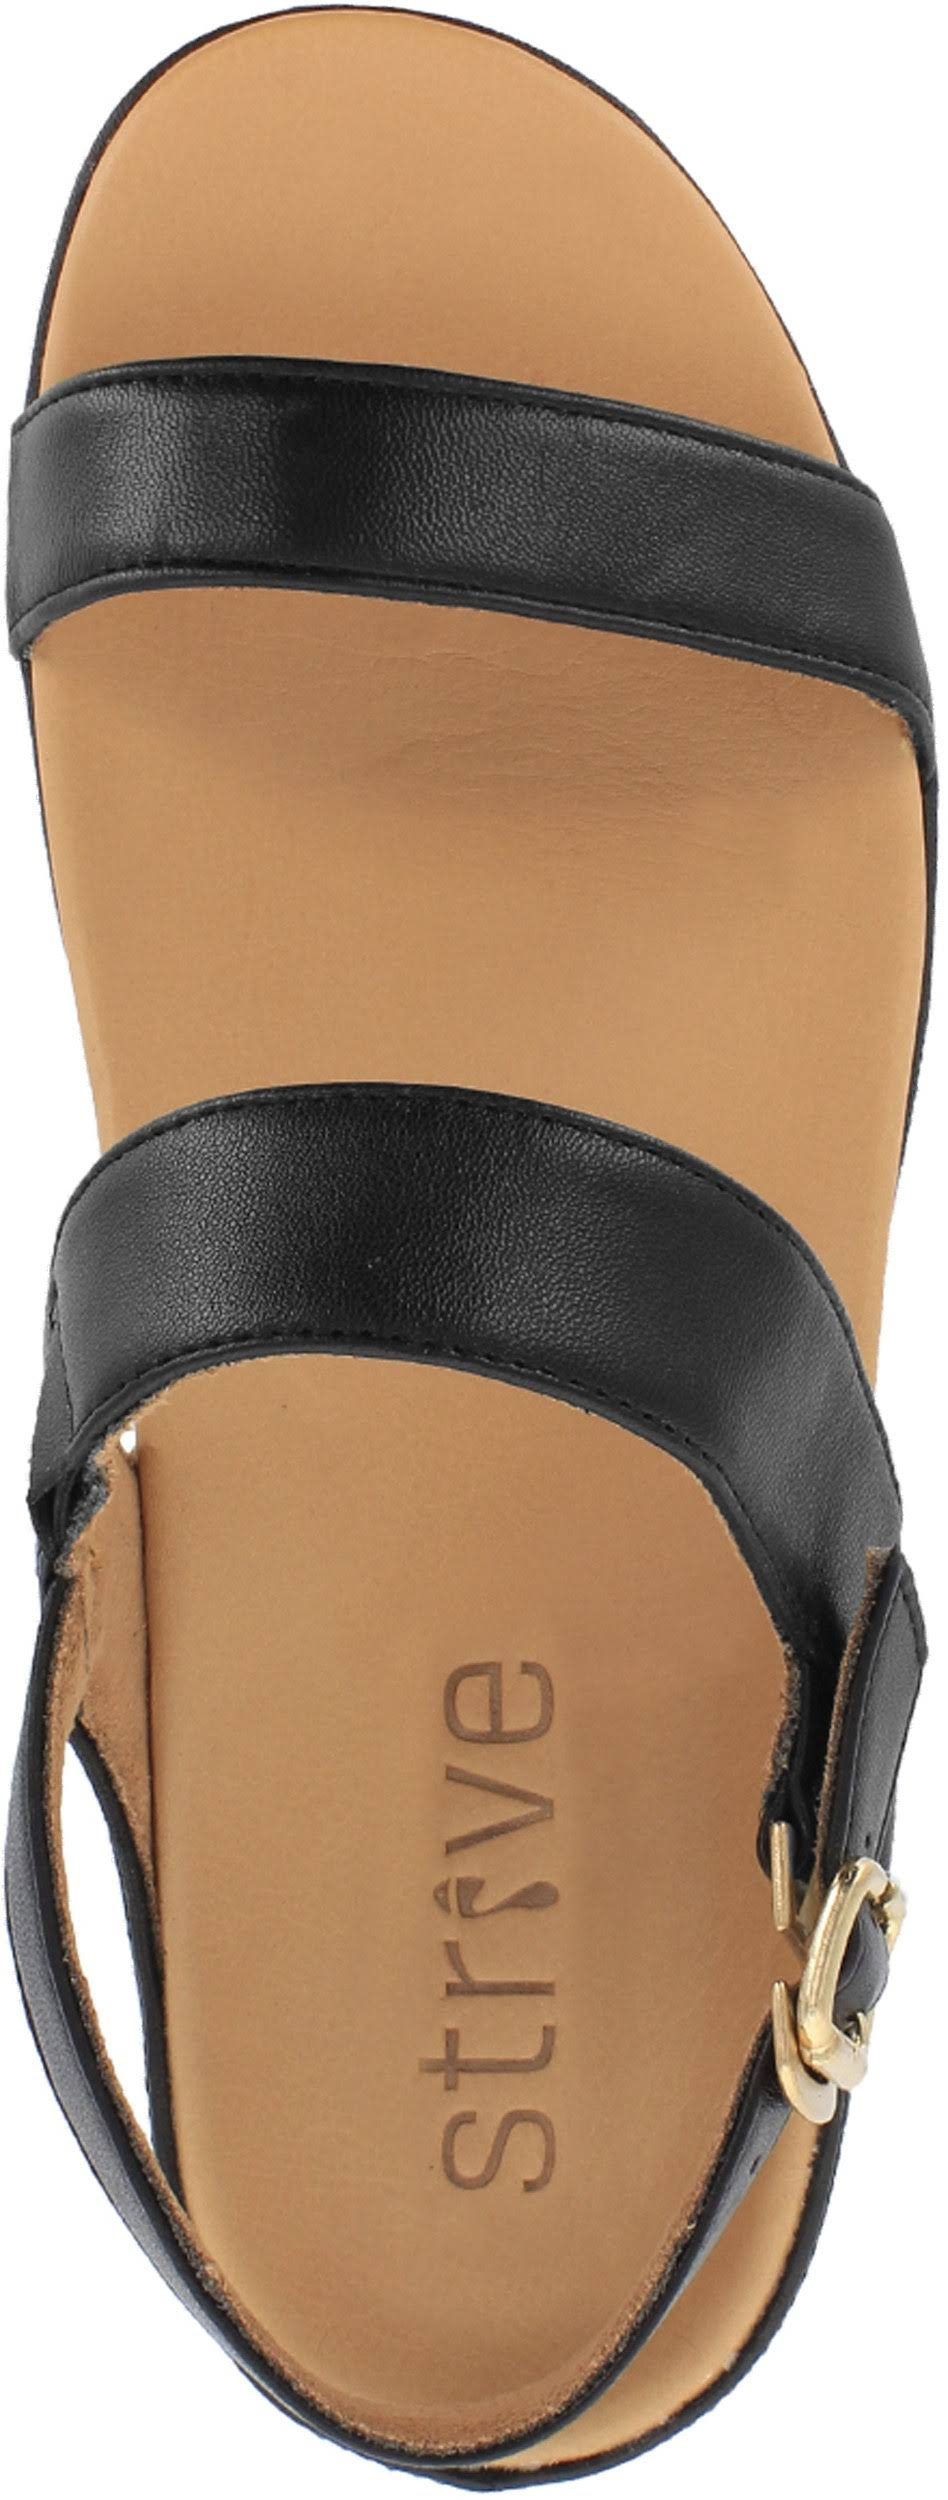 Strive Lucia Ladies All Black Leather Slingback sandals, 4 UK  7VY2qO